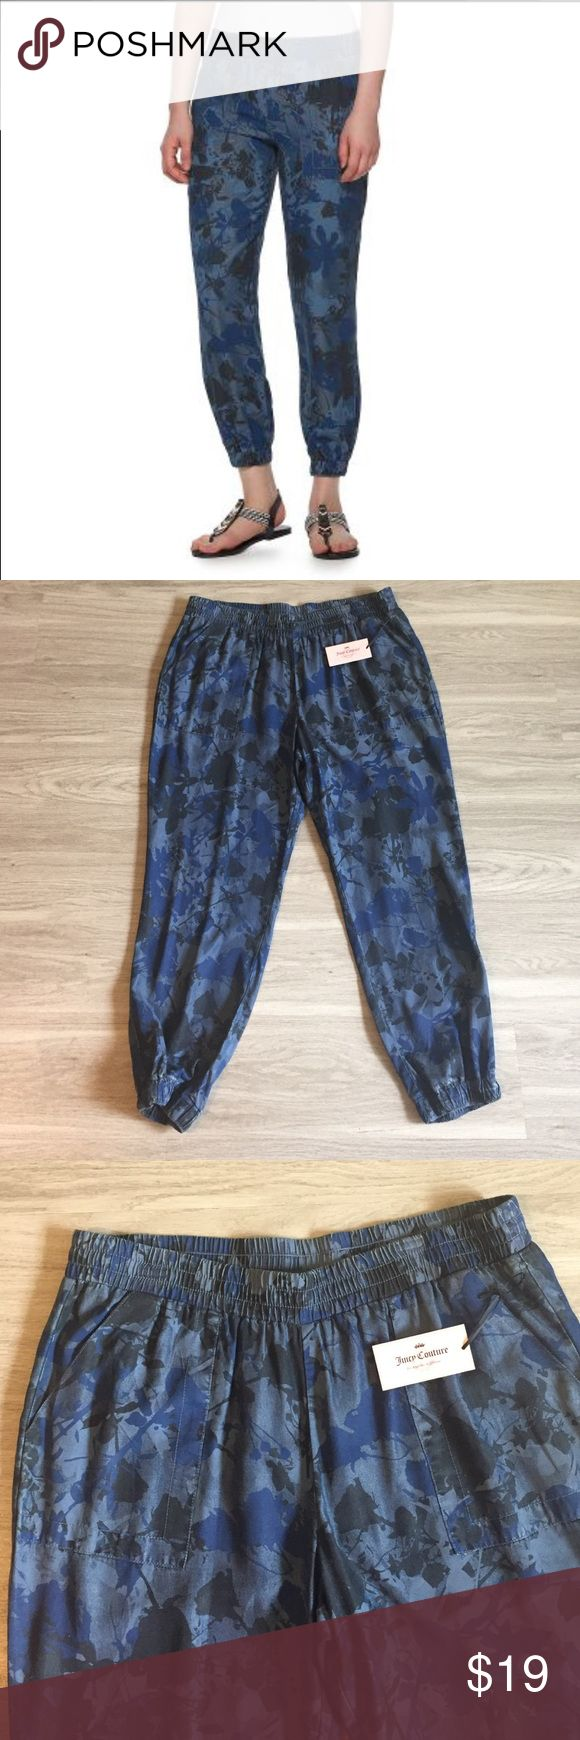 Women's Juicy Couture Camo XL Jogger Pants Womens Juicy Couture jogger pants. The floral camo print adds rugged flair to your chic look. In blue. 2-pork chop pockets 2-faux pockets Soft Tencel construction 29-in. inseam Juicy Couture Pants Track Pants & Joggers